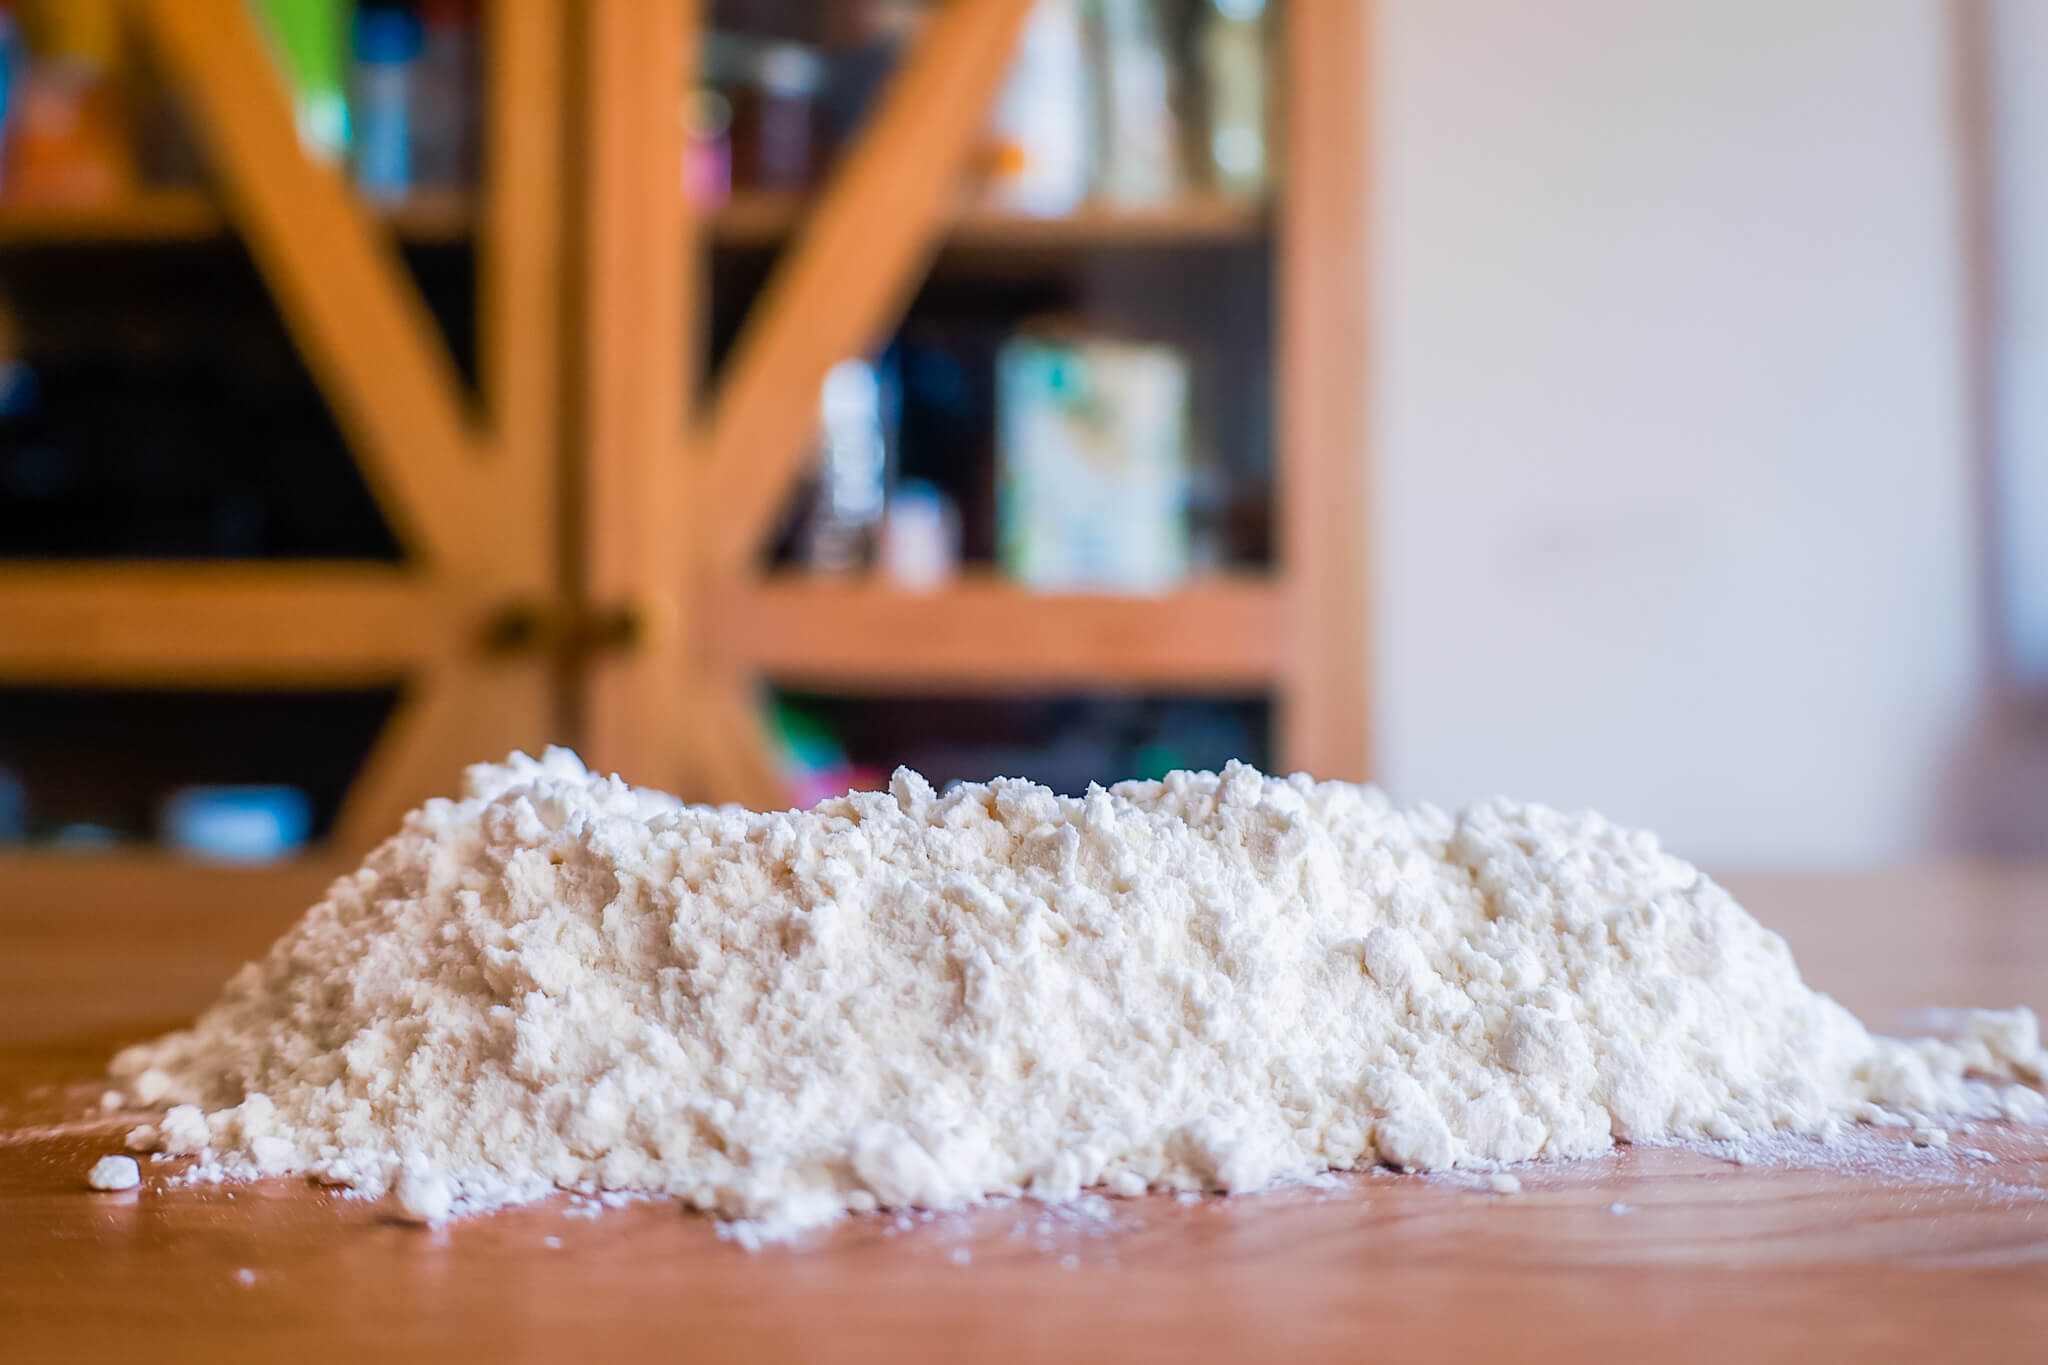 A pile of flour resting on a table.